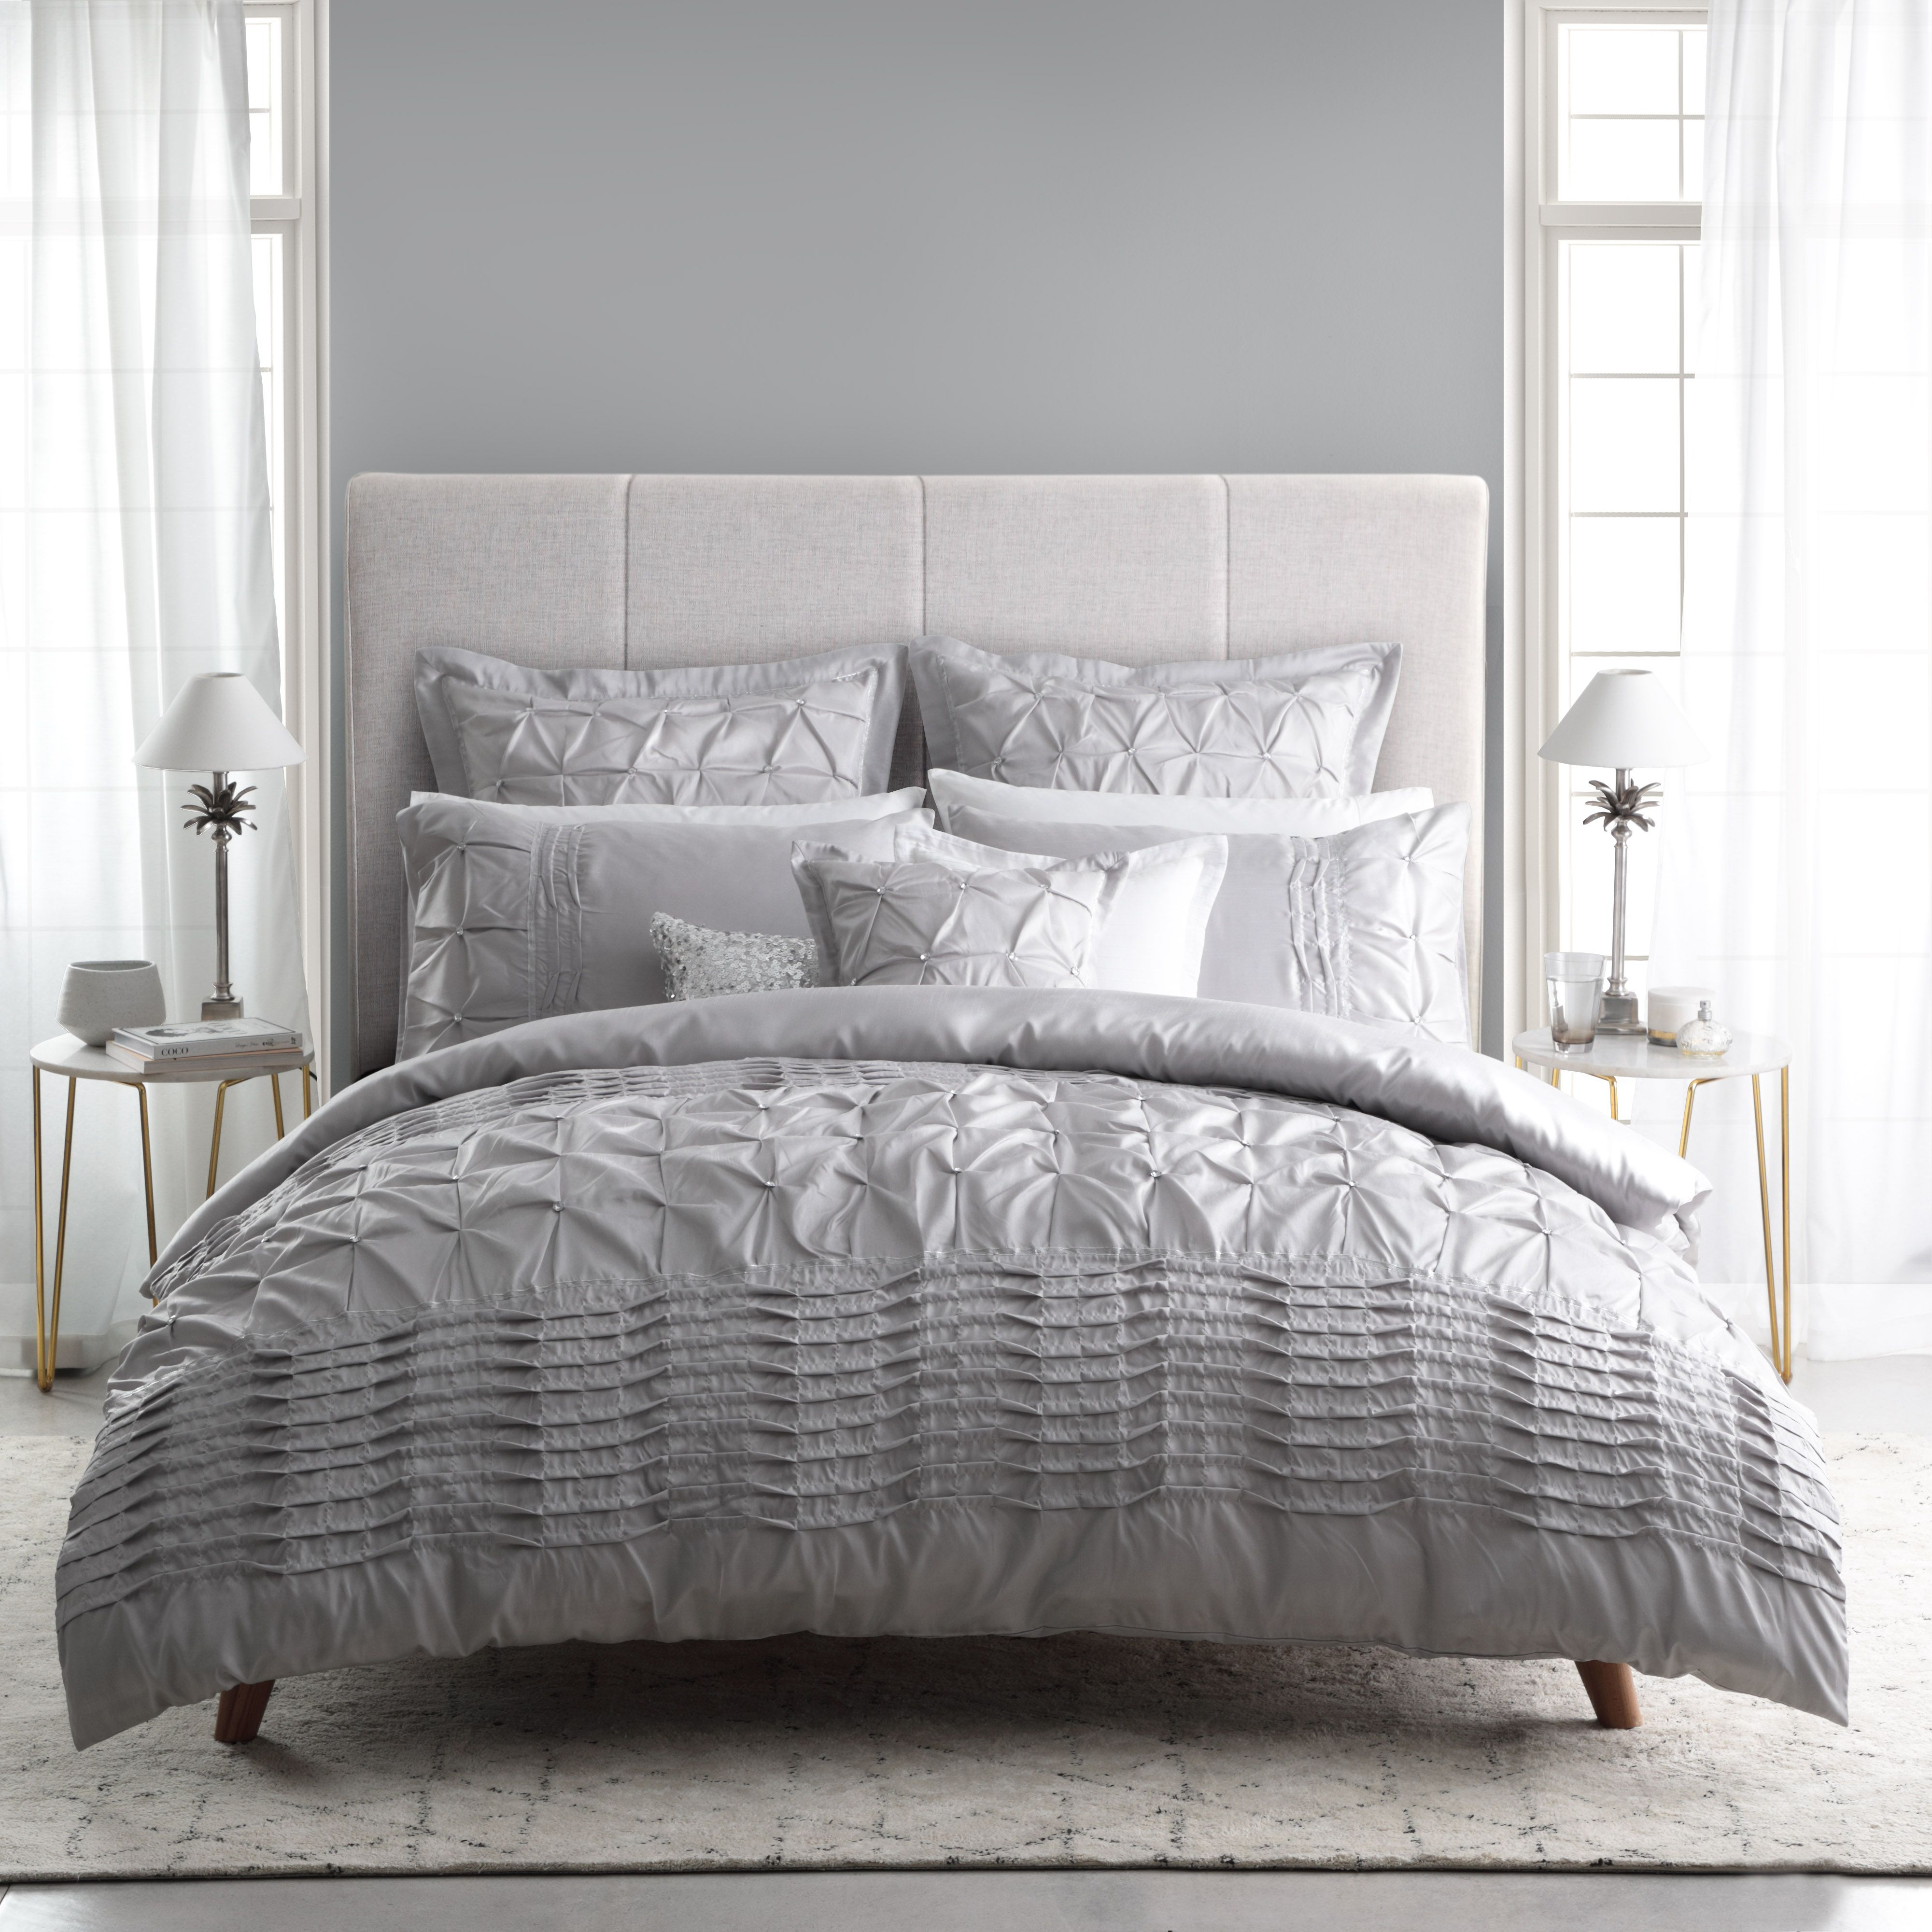 Francesca Silver adds instant glamour to the bedroom